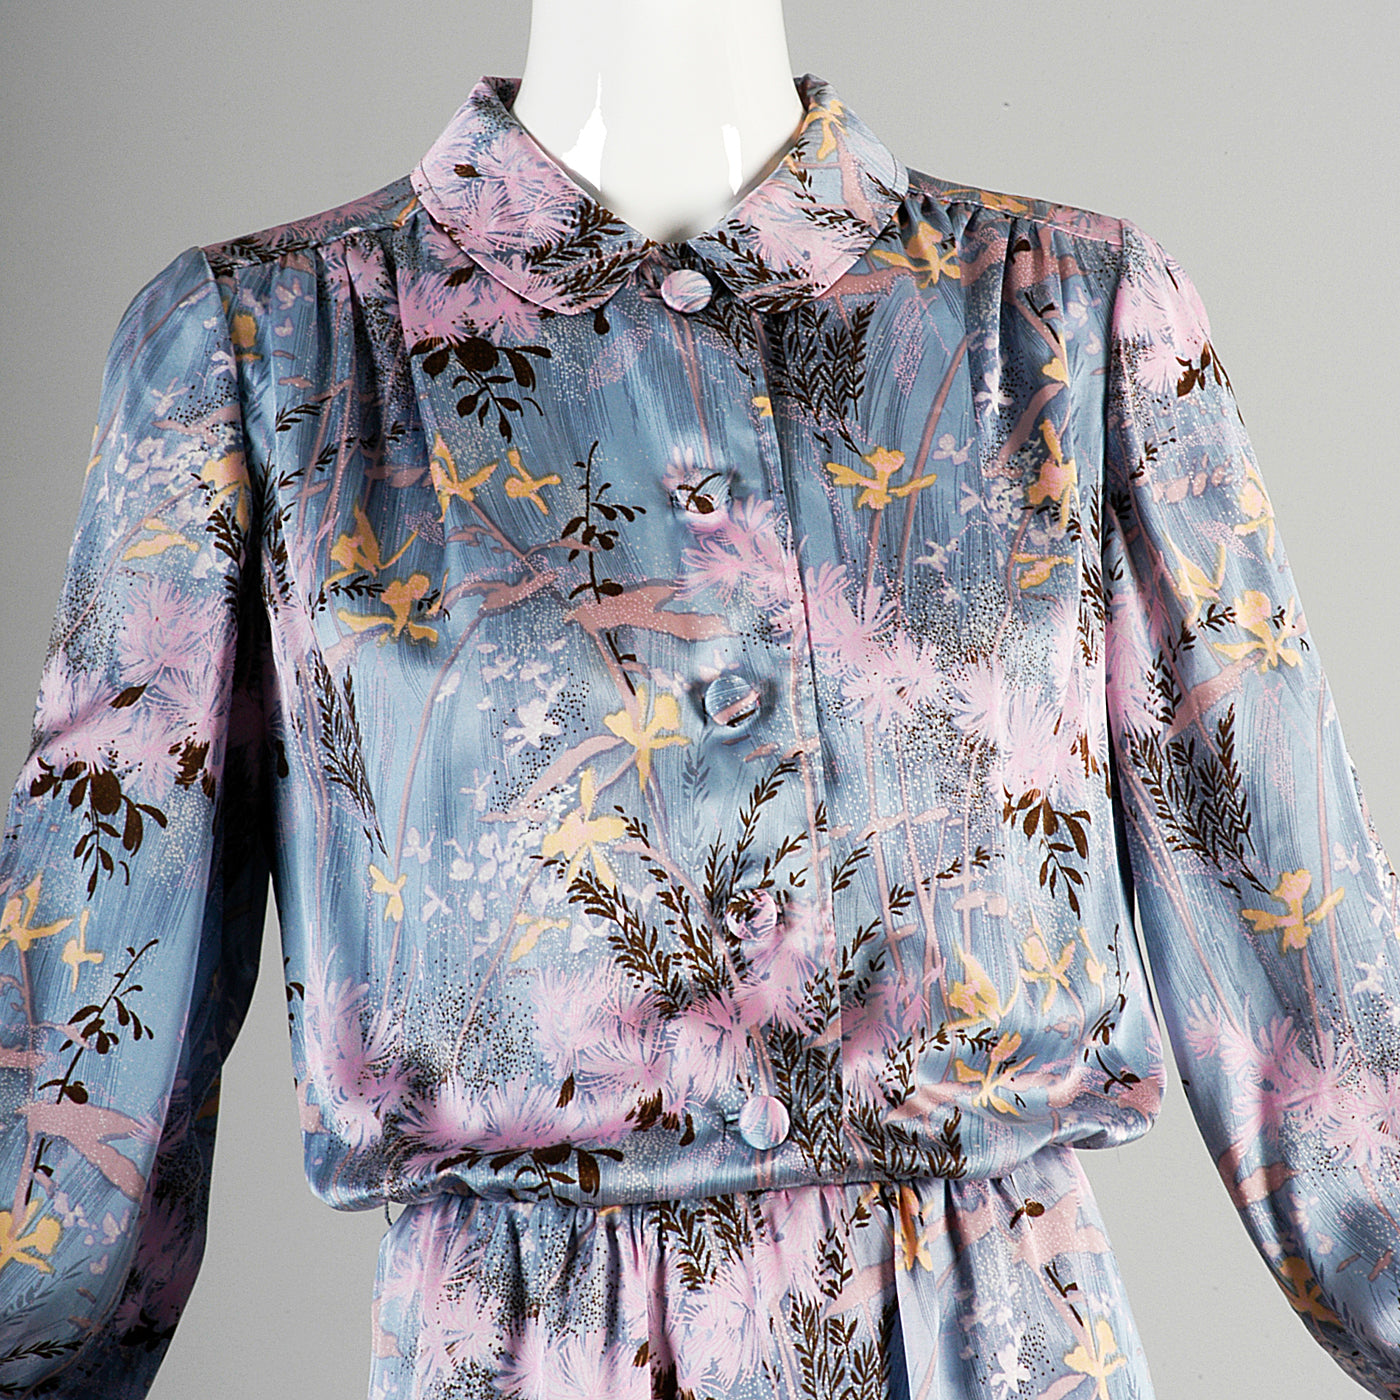 1940s Silk Periwinkle Blue Dress with Floral Print